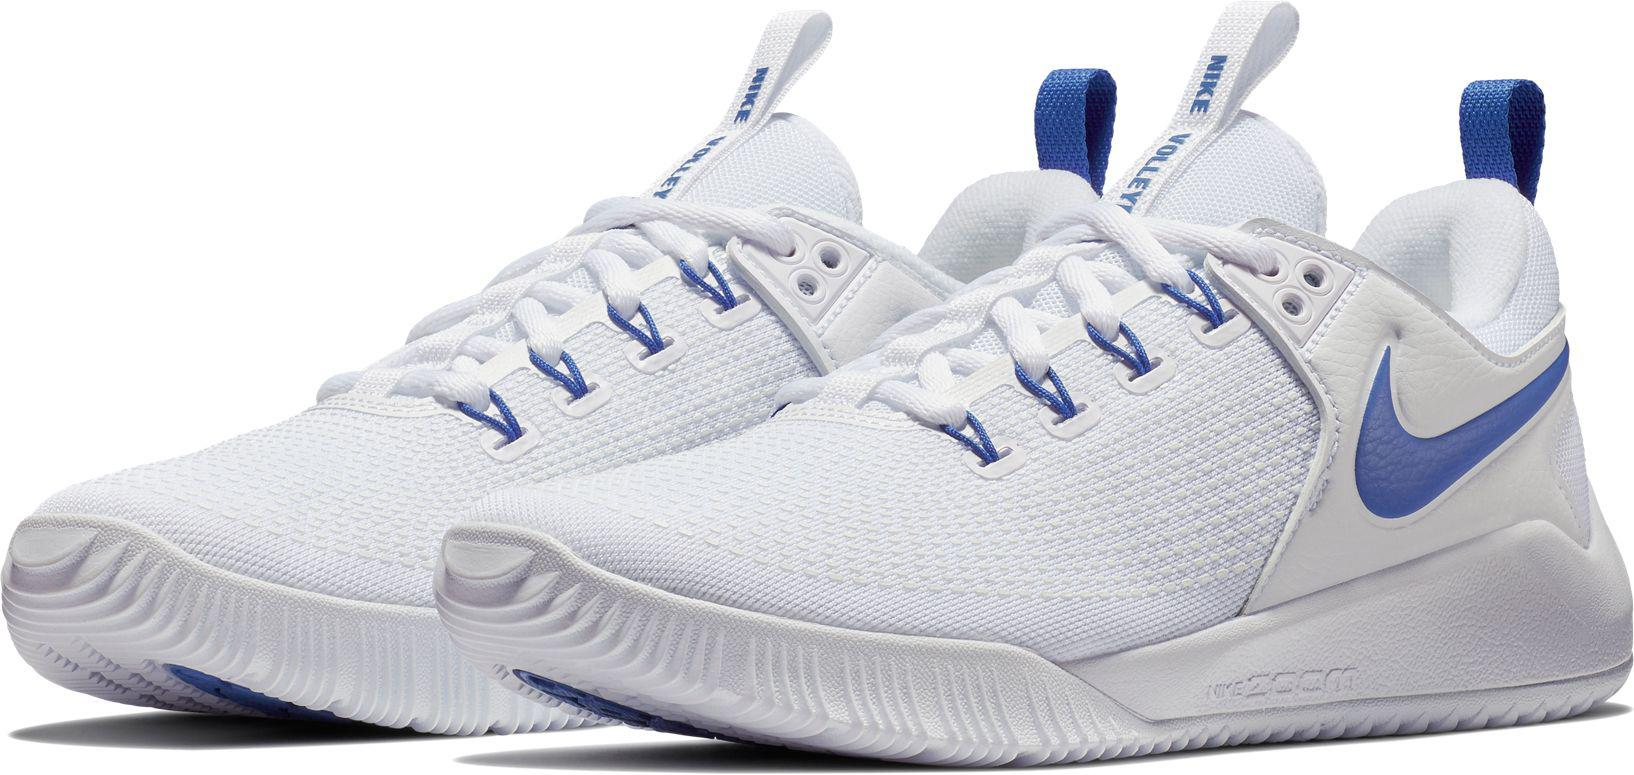 b8e93df7bb7 nike-WhiteBlue-Zoom-Hyperace-2-Volleyball-Shoes.jpeg